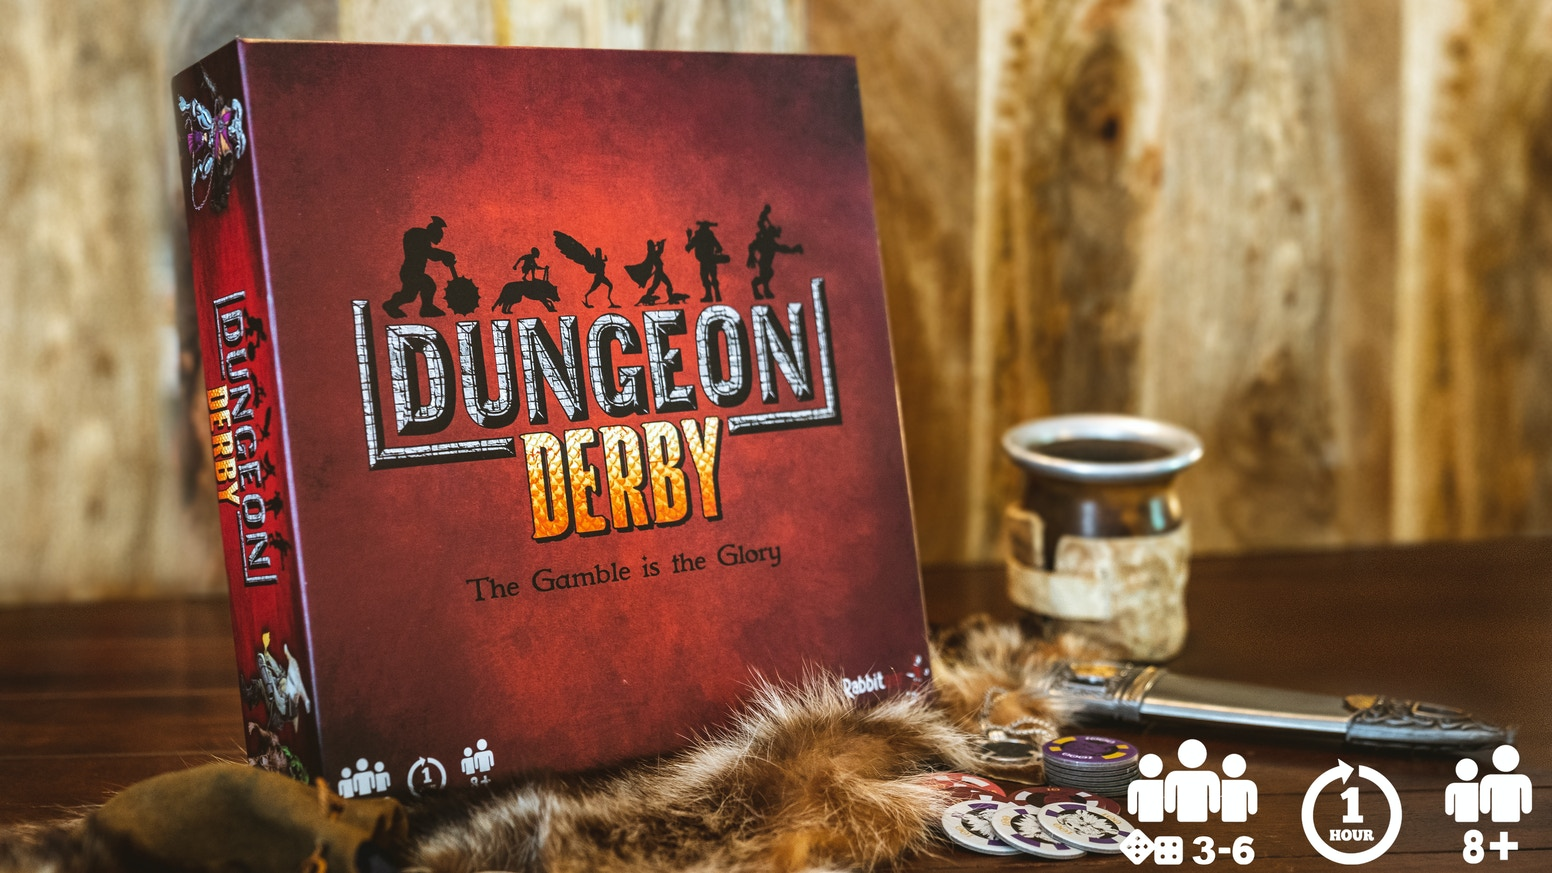 Dungeon Derby is a party game filled with strategy, betting, and a bit of luck. Non-stop action for players of all ages!